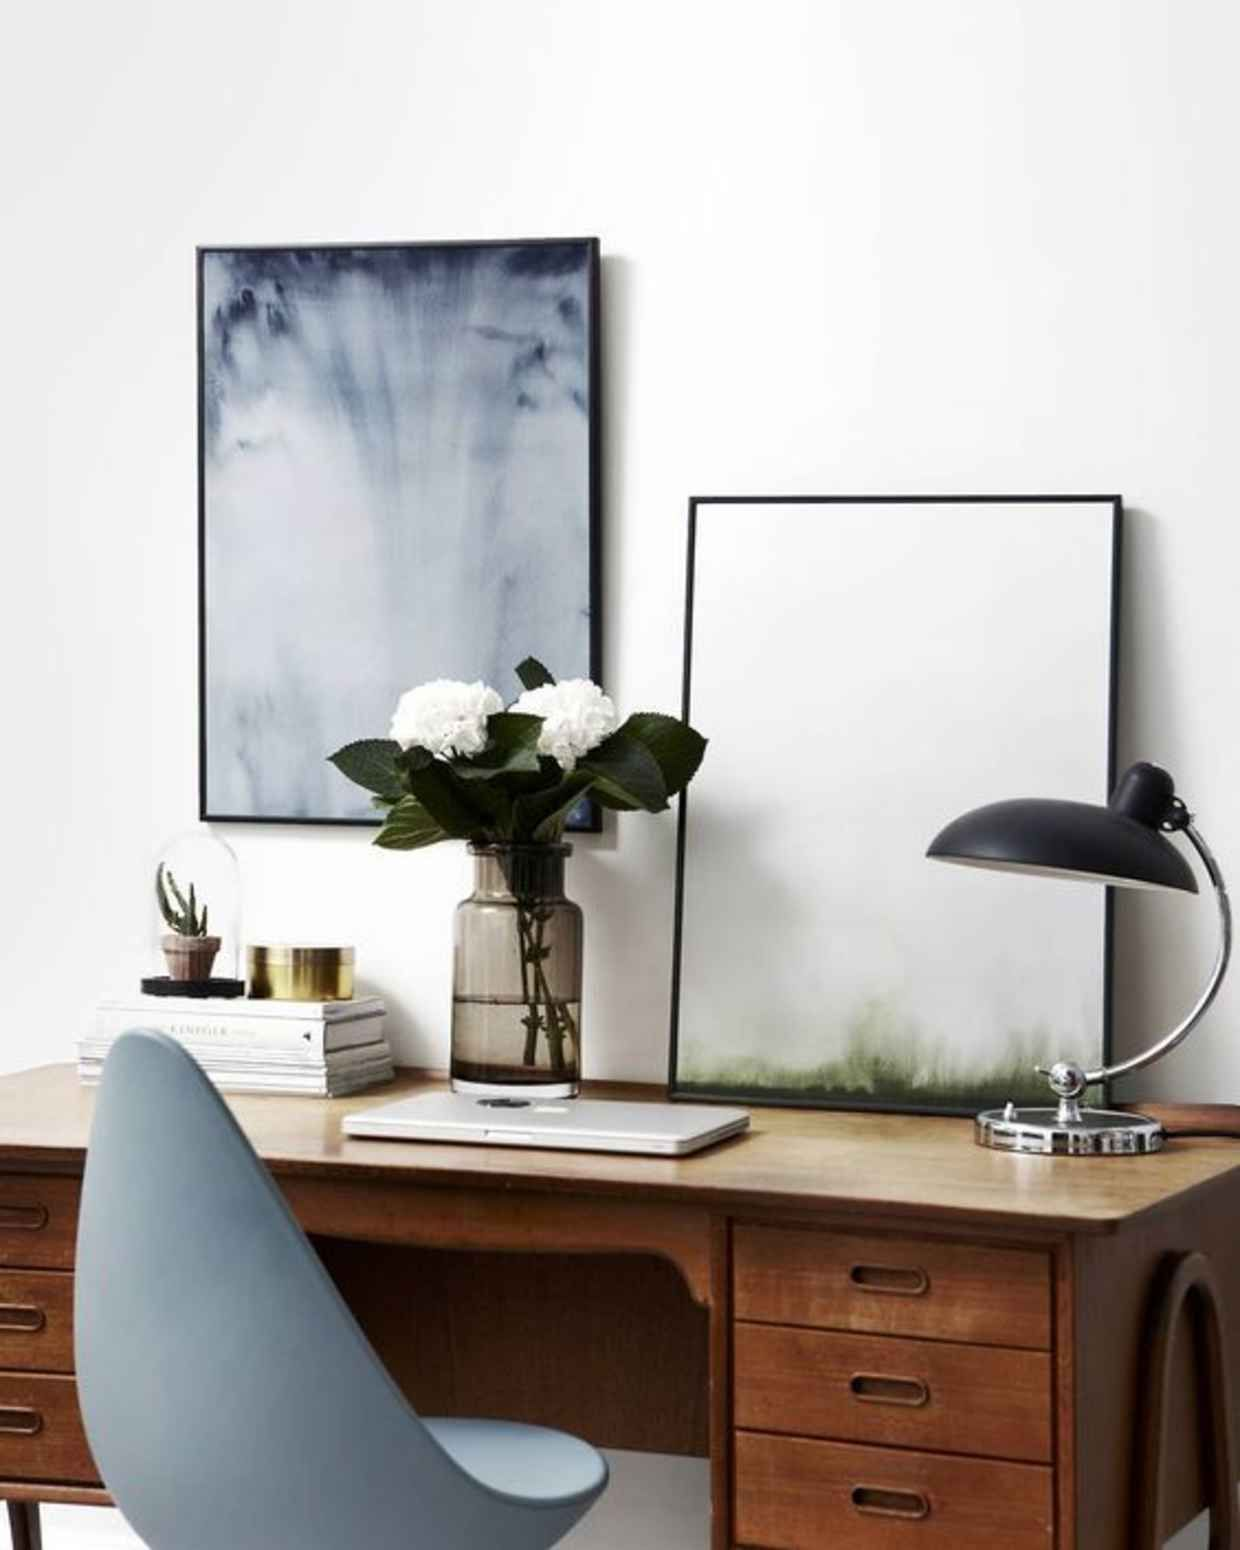 Minimal Interior Design Inspiration #42 | Home office ...